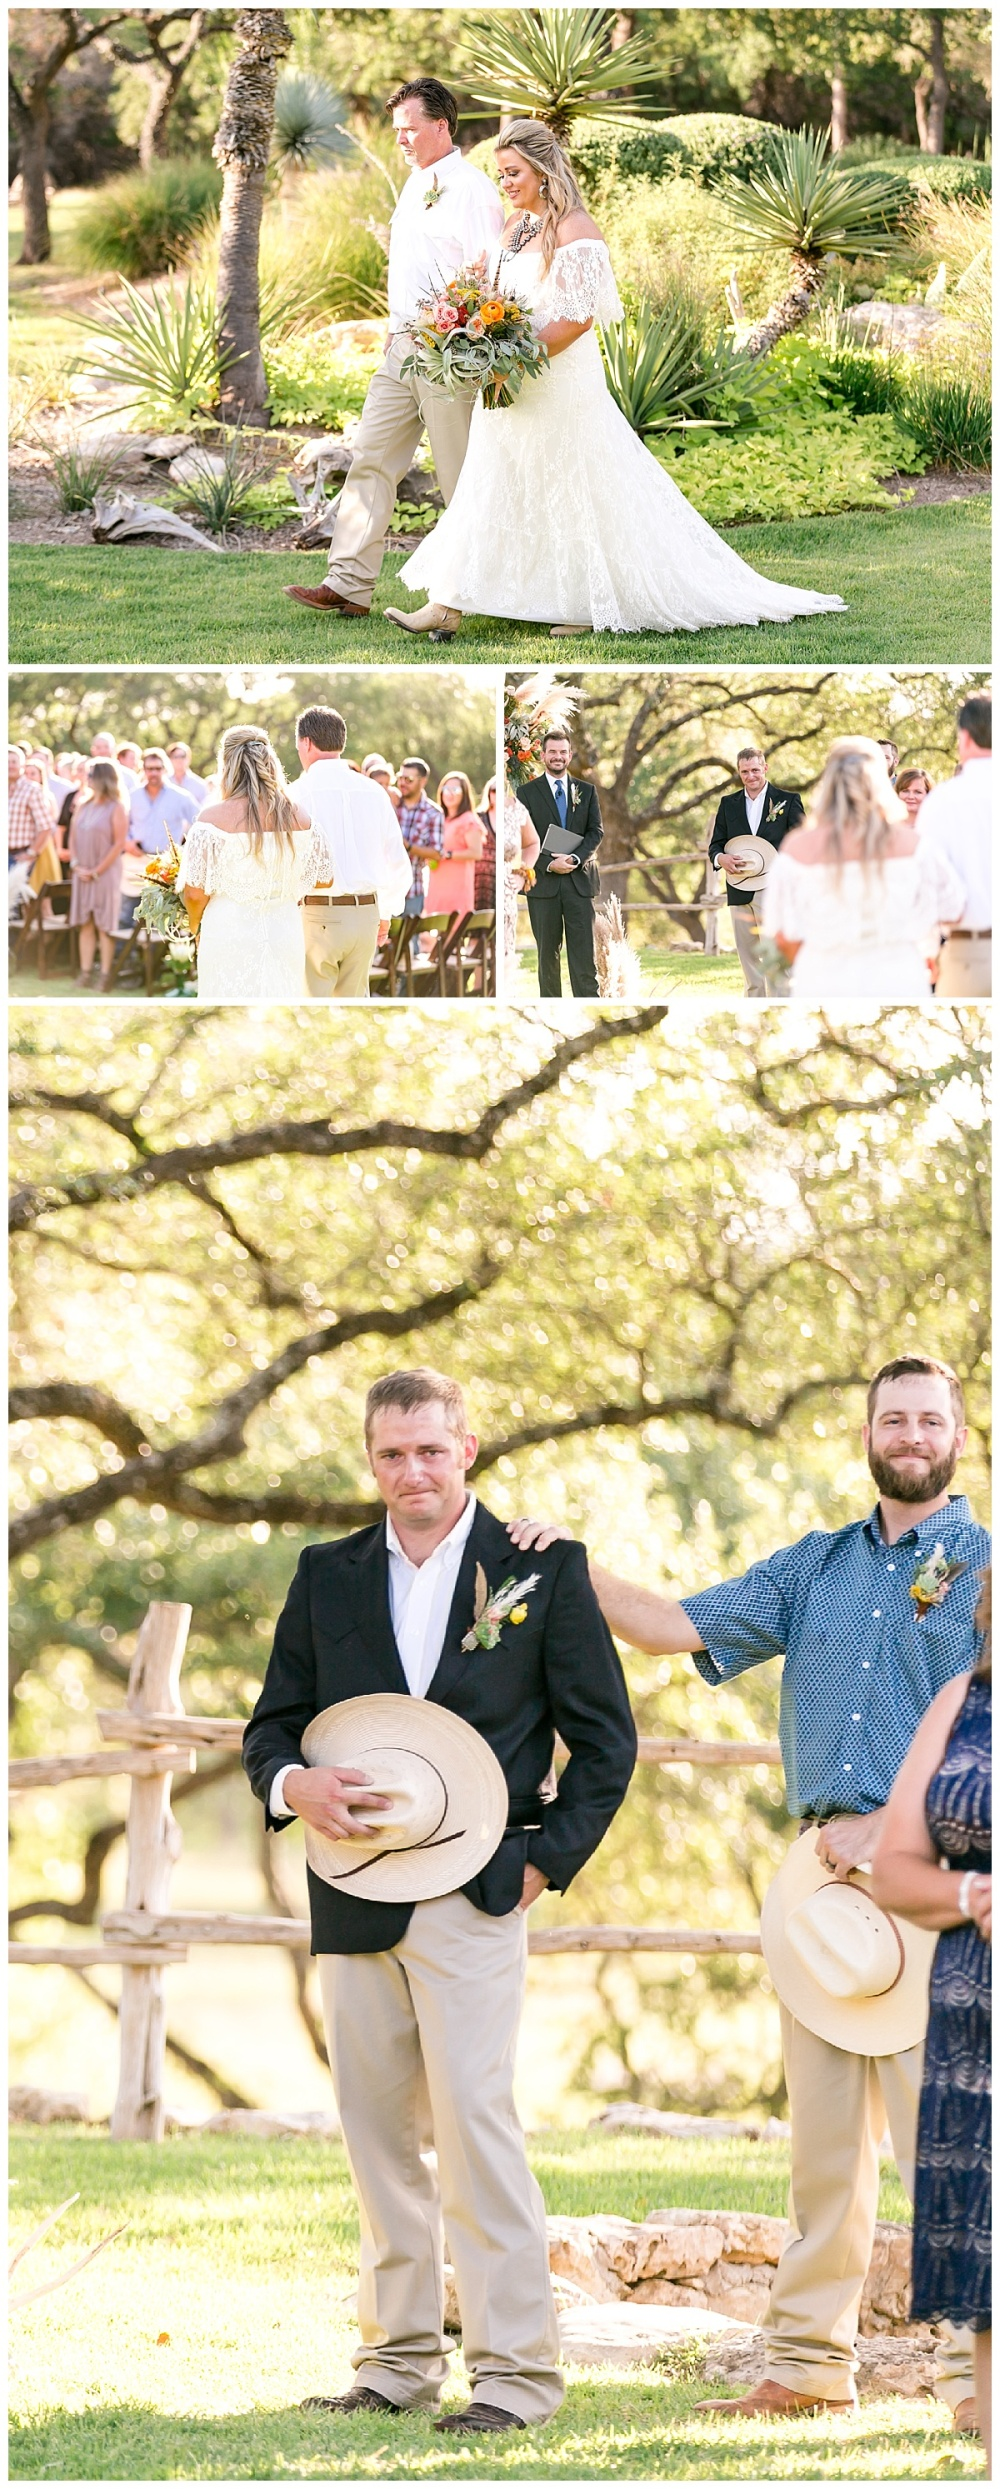 Texas-Wedding-Photographer-Braded-T-Ranch-Kendalia-Bride-Groom-Southwestern-Style-Carly-Barton-Photography-Vogt_0031.jpg